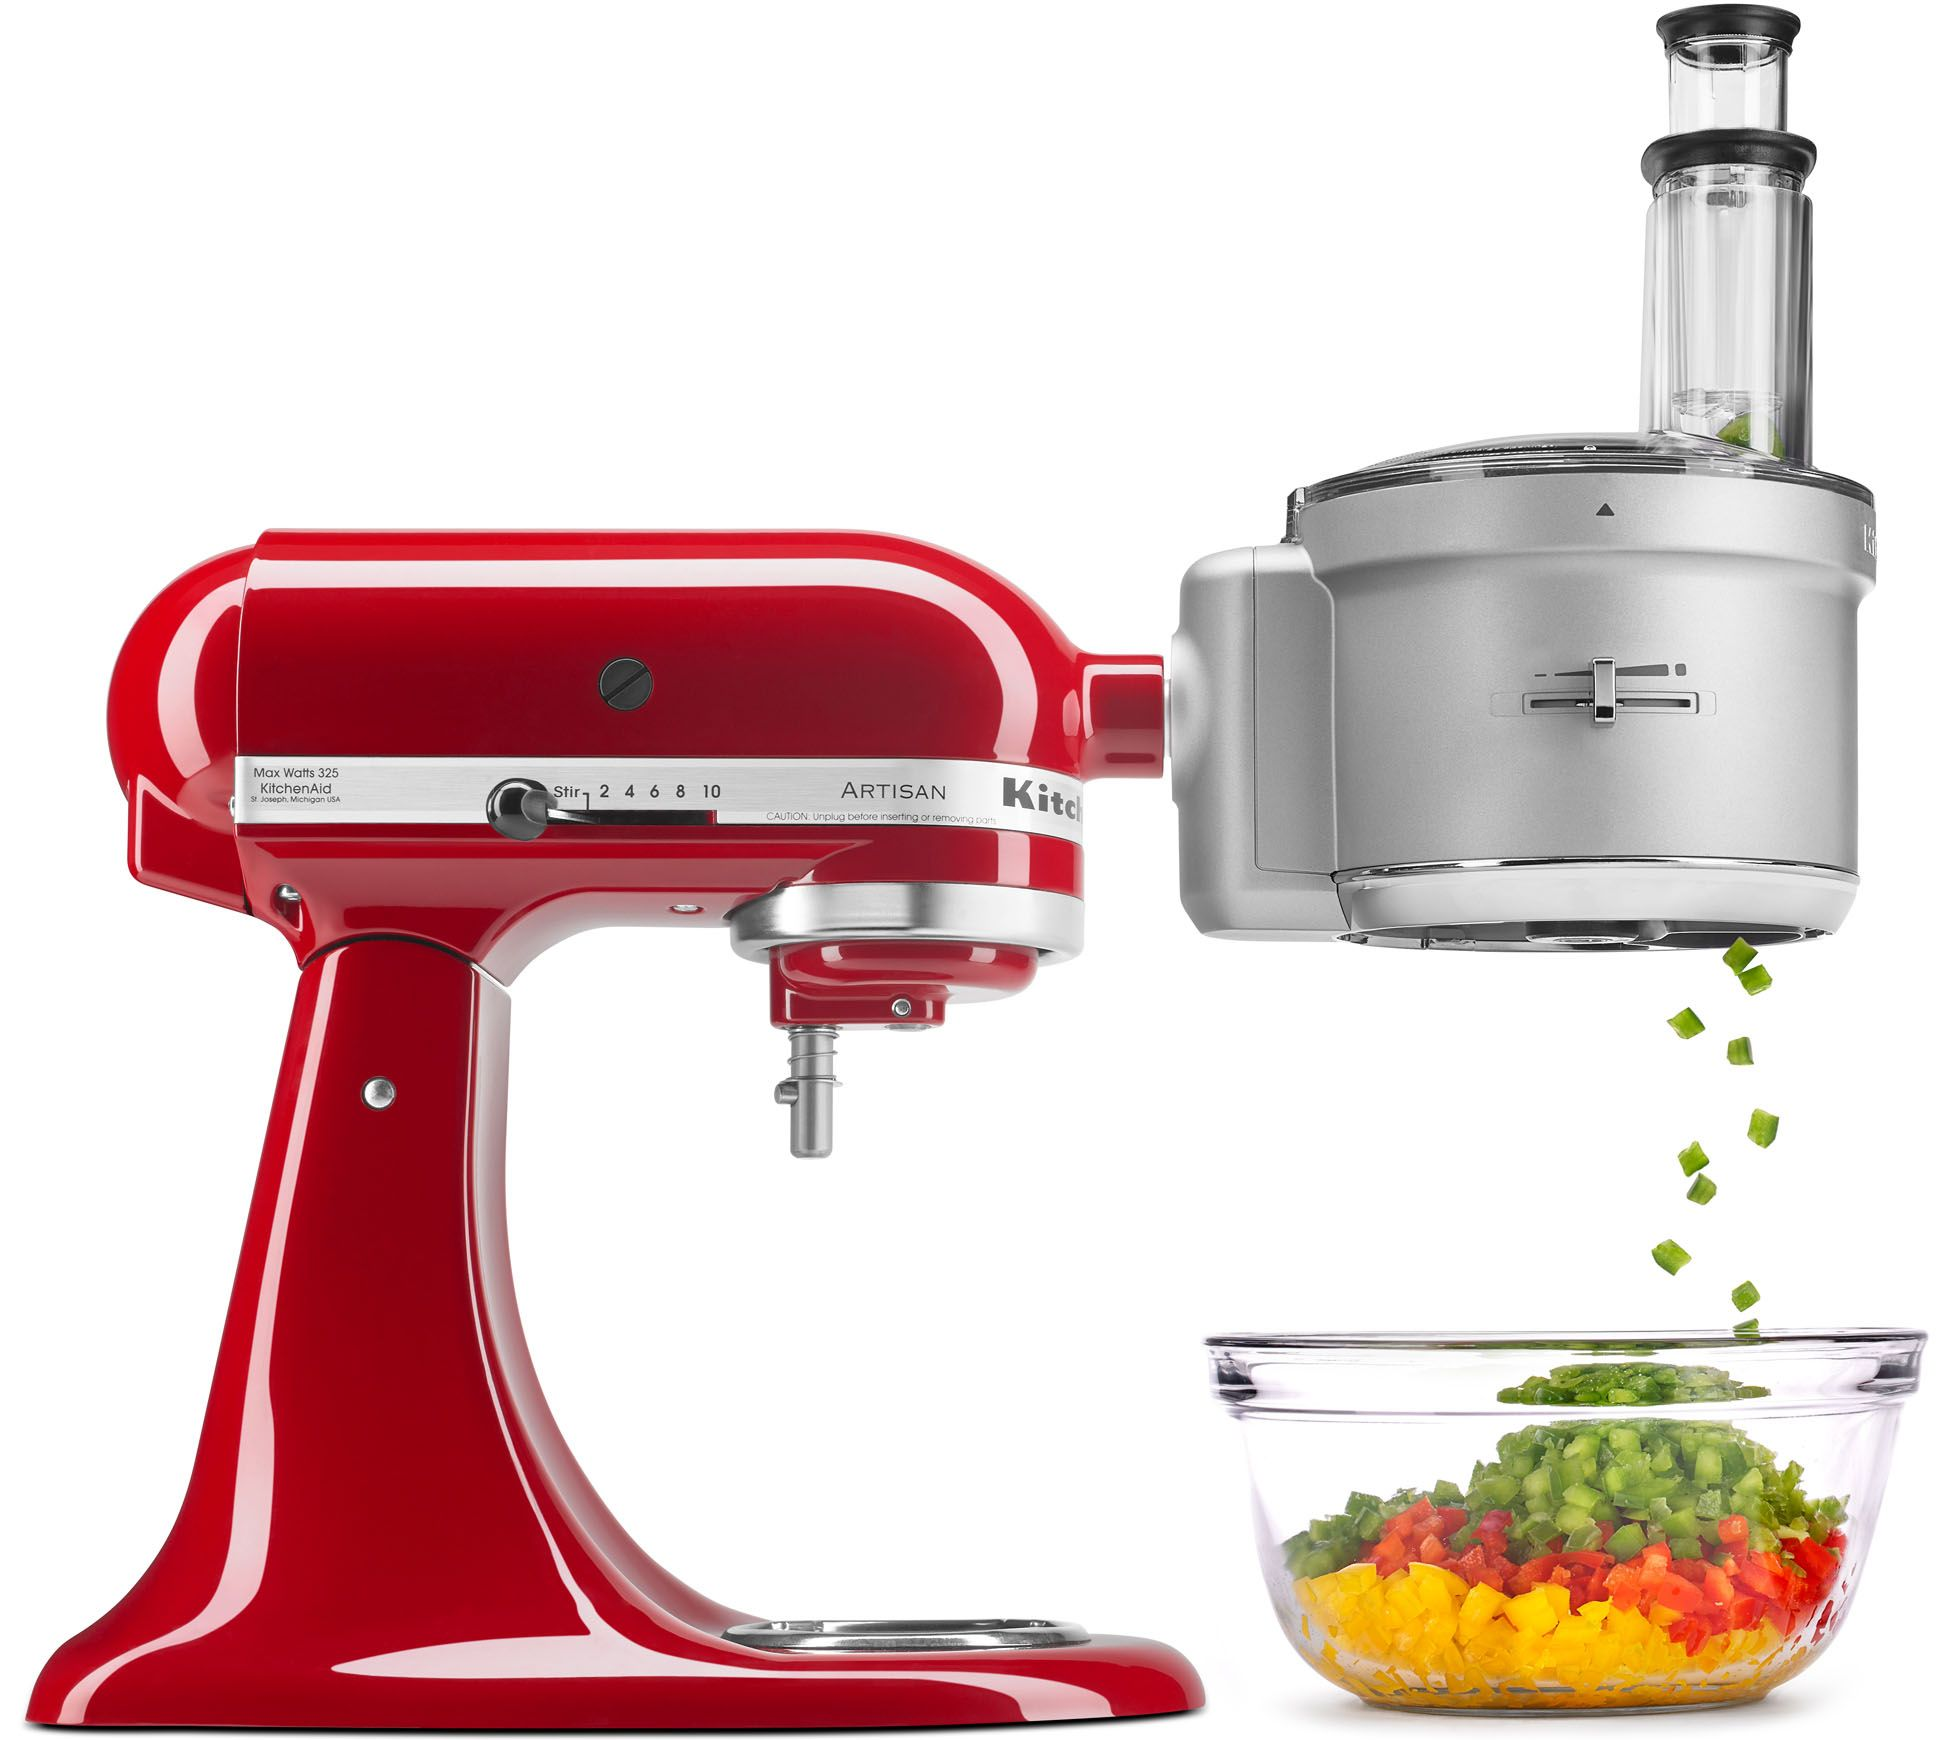 KitchenAid KitchenAid Appliances Accessories QVCcom